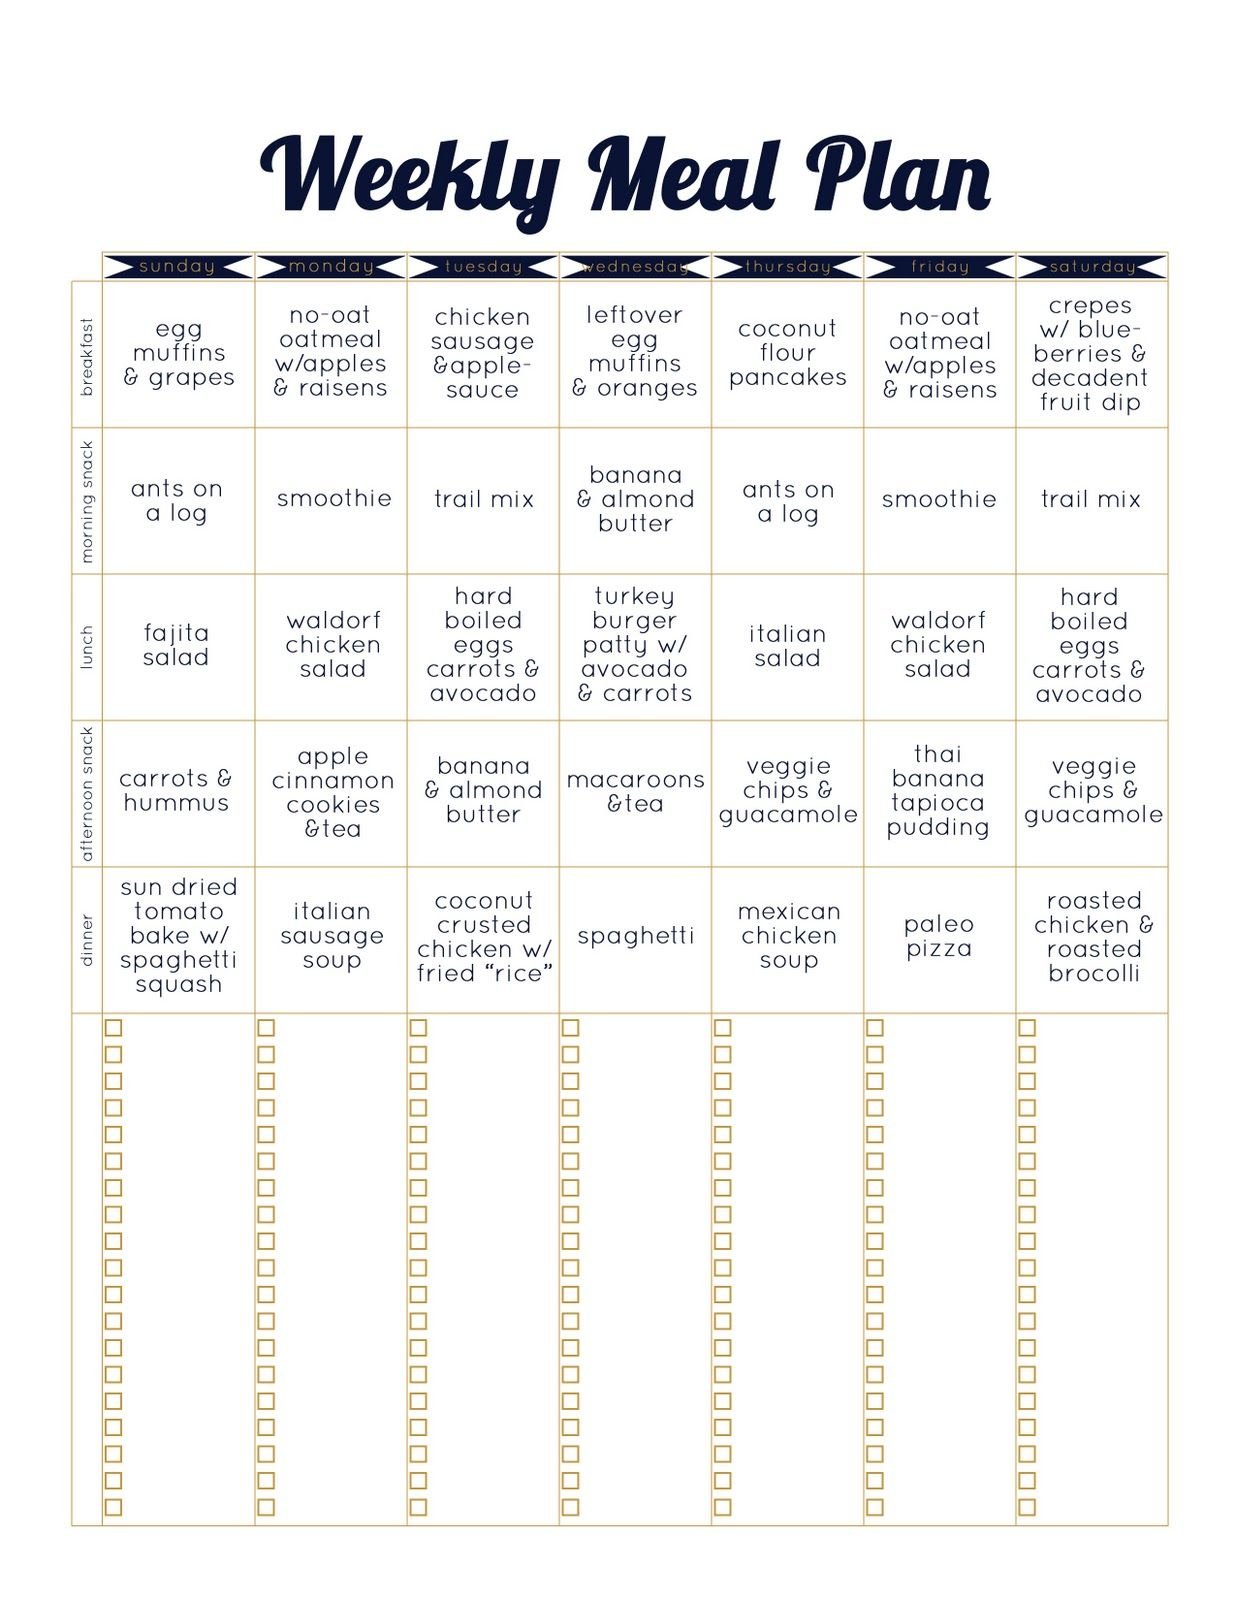 Paleo Template Weekly Meal Plan Paleo Diet Recipes Paleo Meal